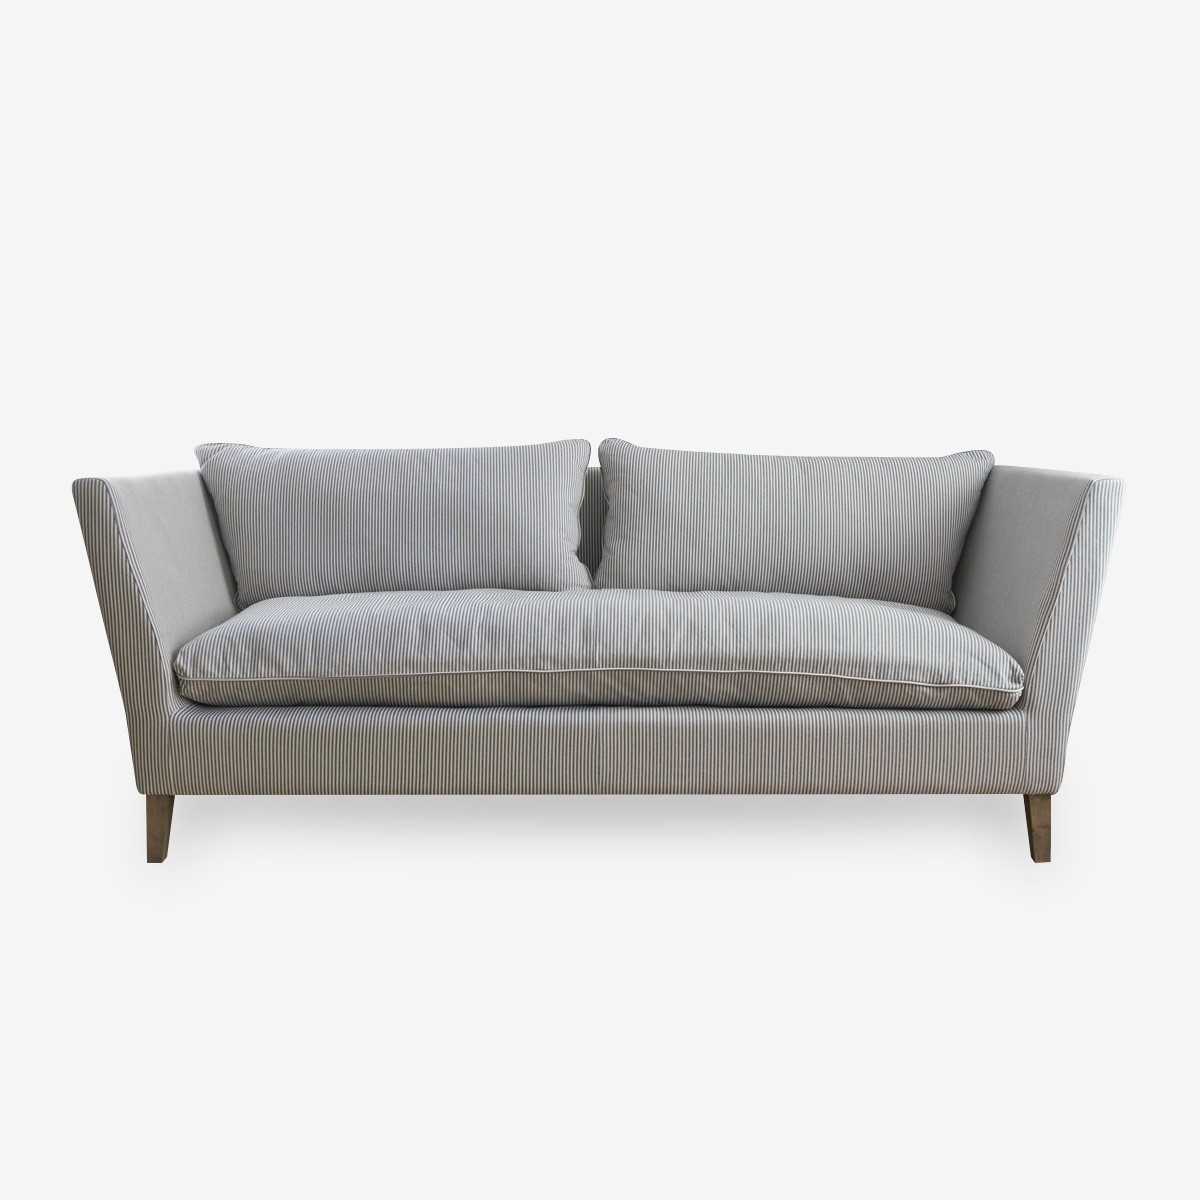 ESSENTIAL SOFA